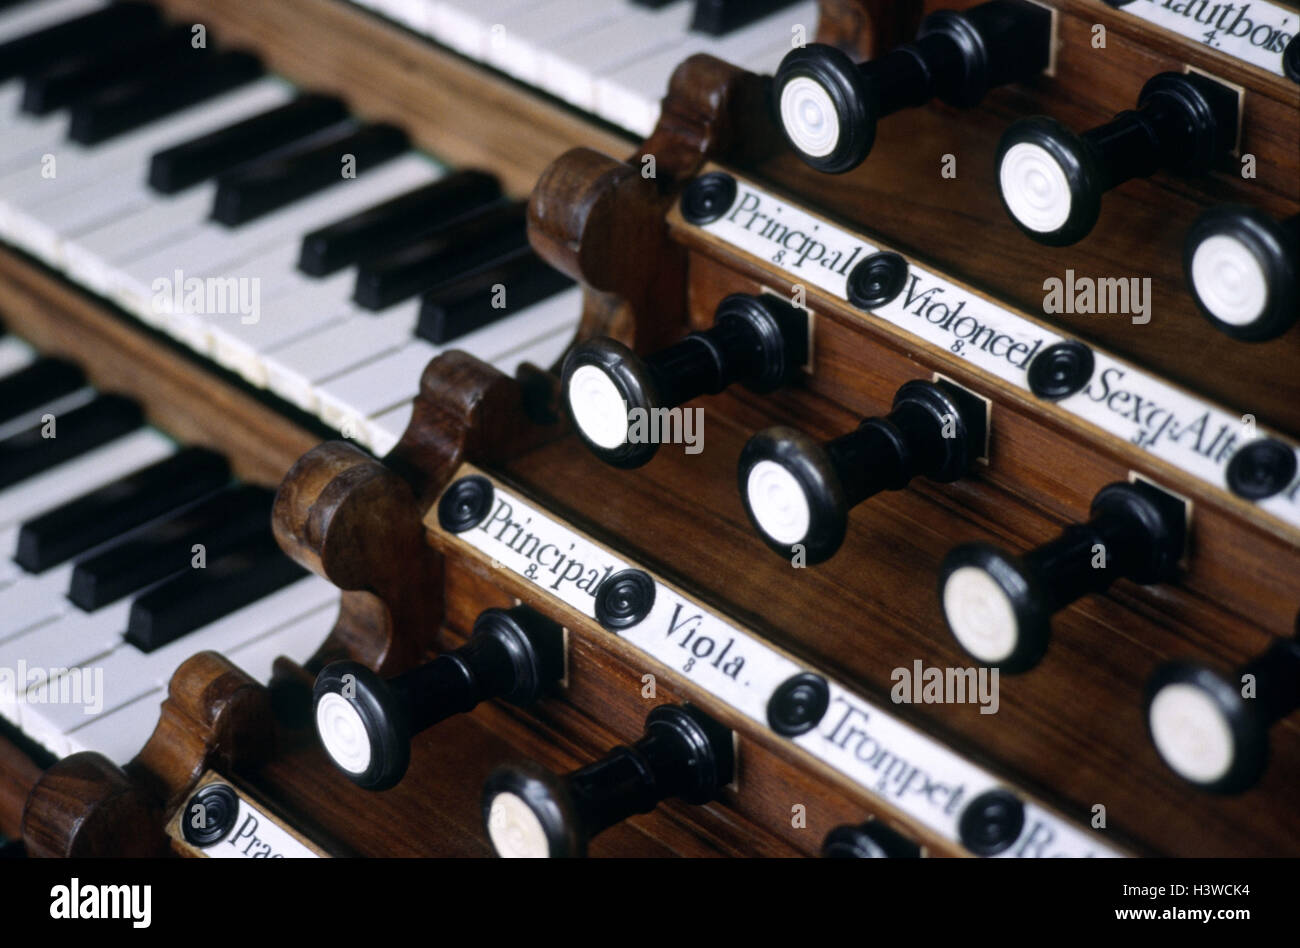 Organ, keyboard, register, detail, buttons, digits, inscription, carving, keyboard, keyboard, buttons, figures, - Stock Image